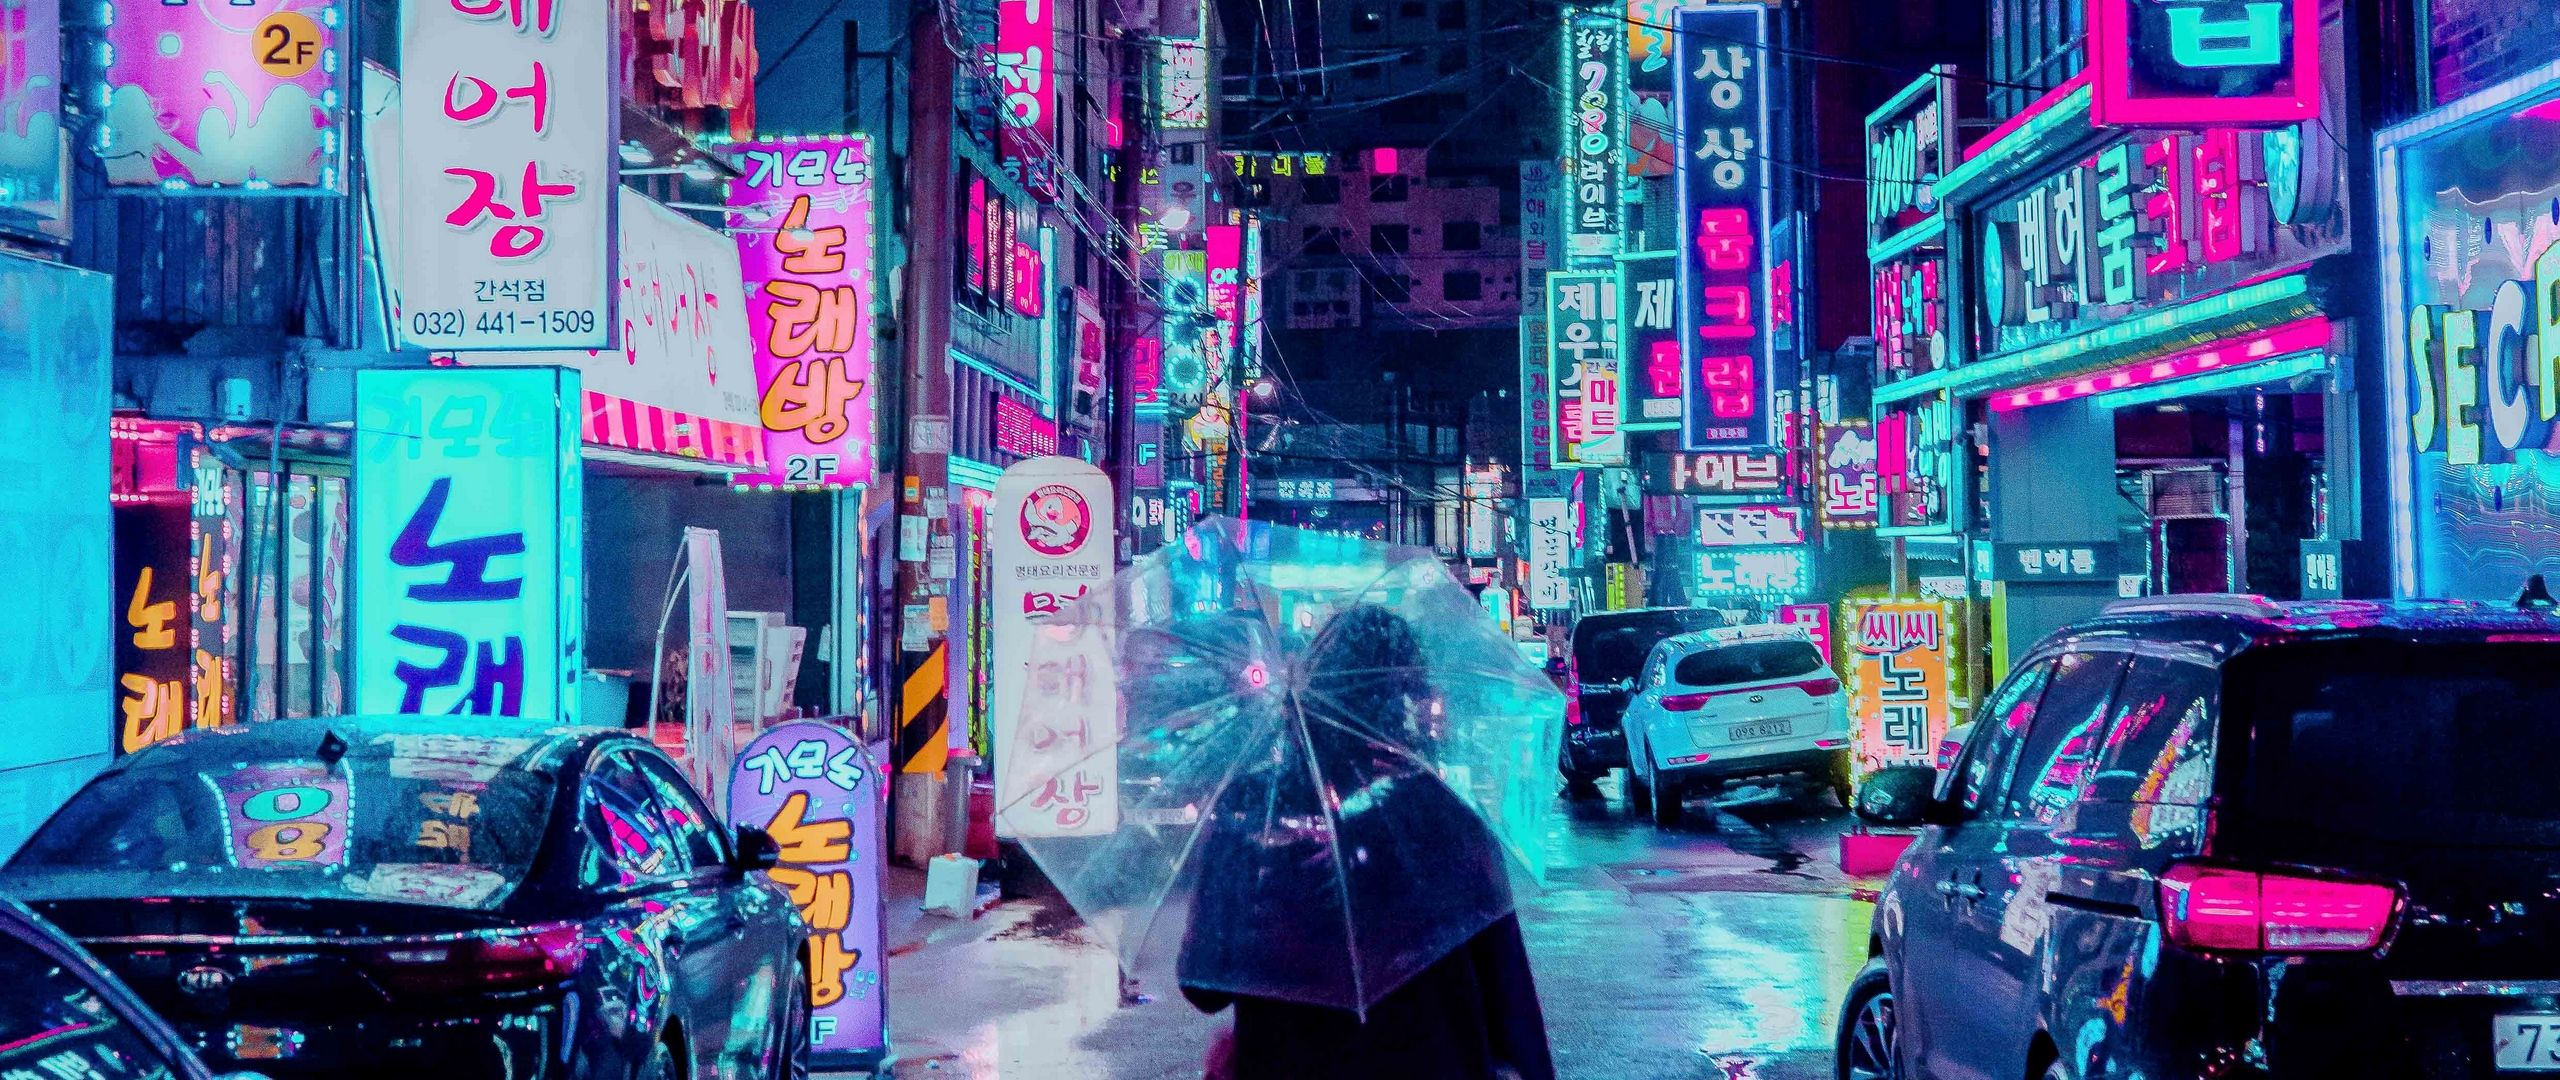 Pin by Moon Cake on Japan With images City wallpaper 2560x1080